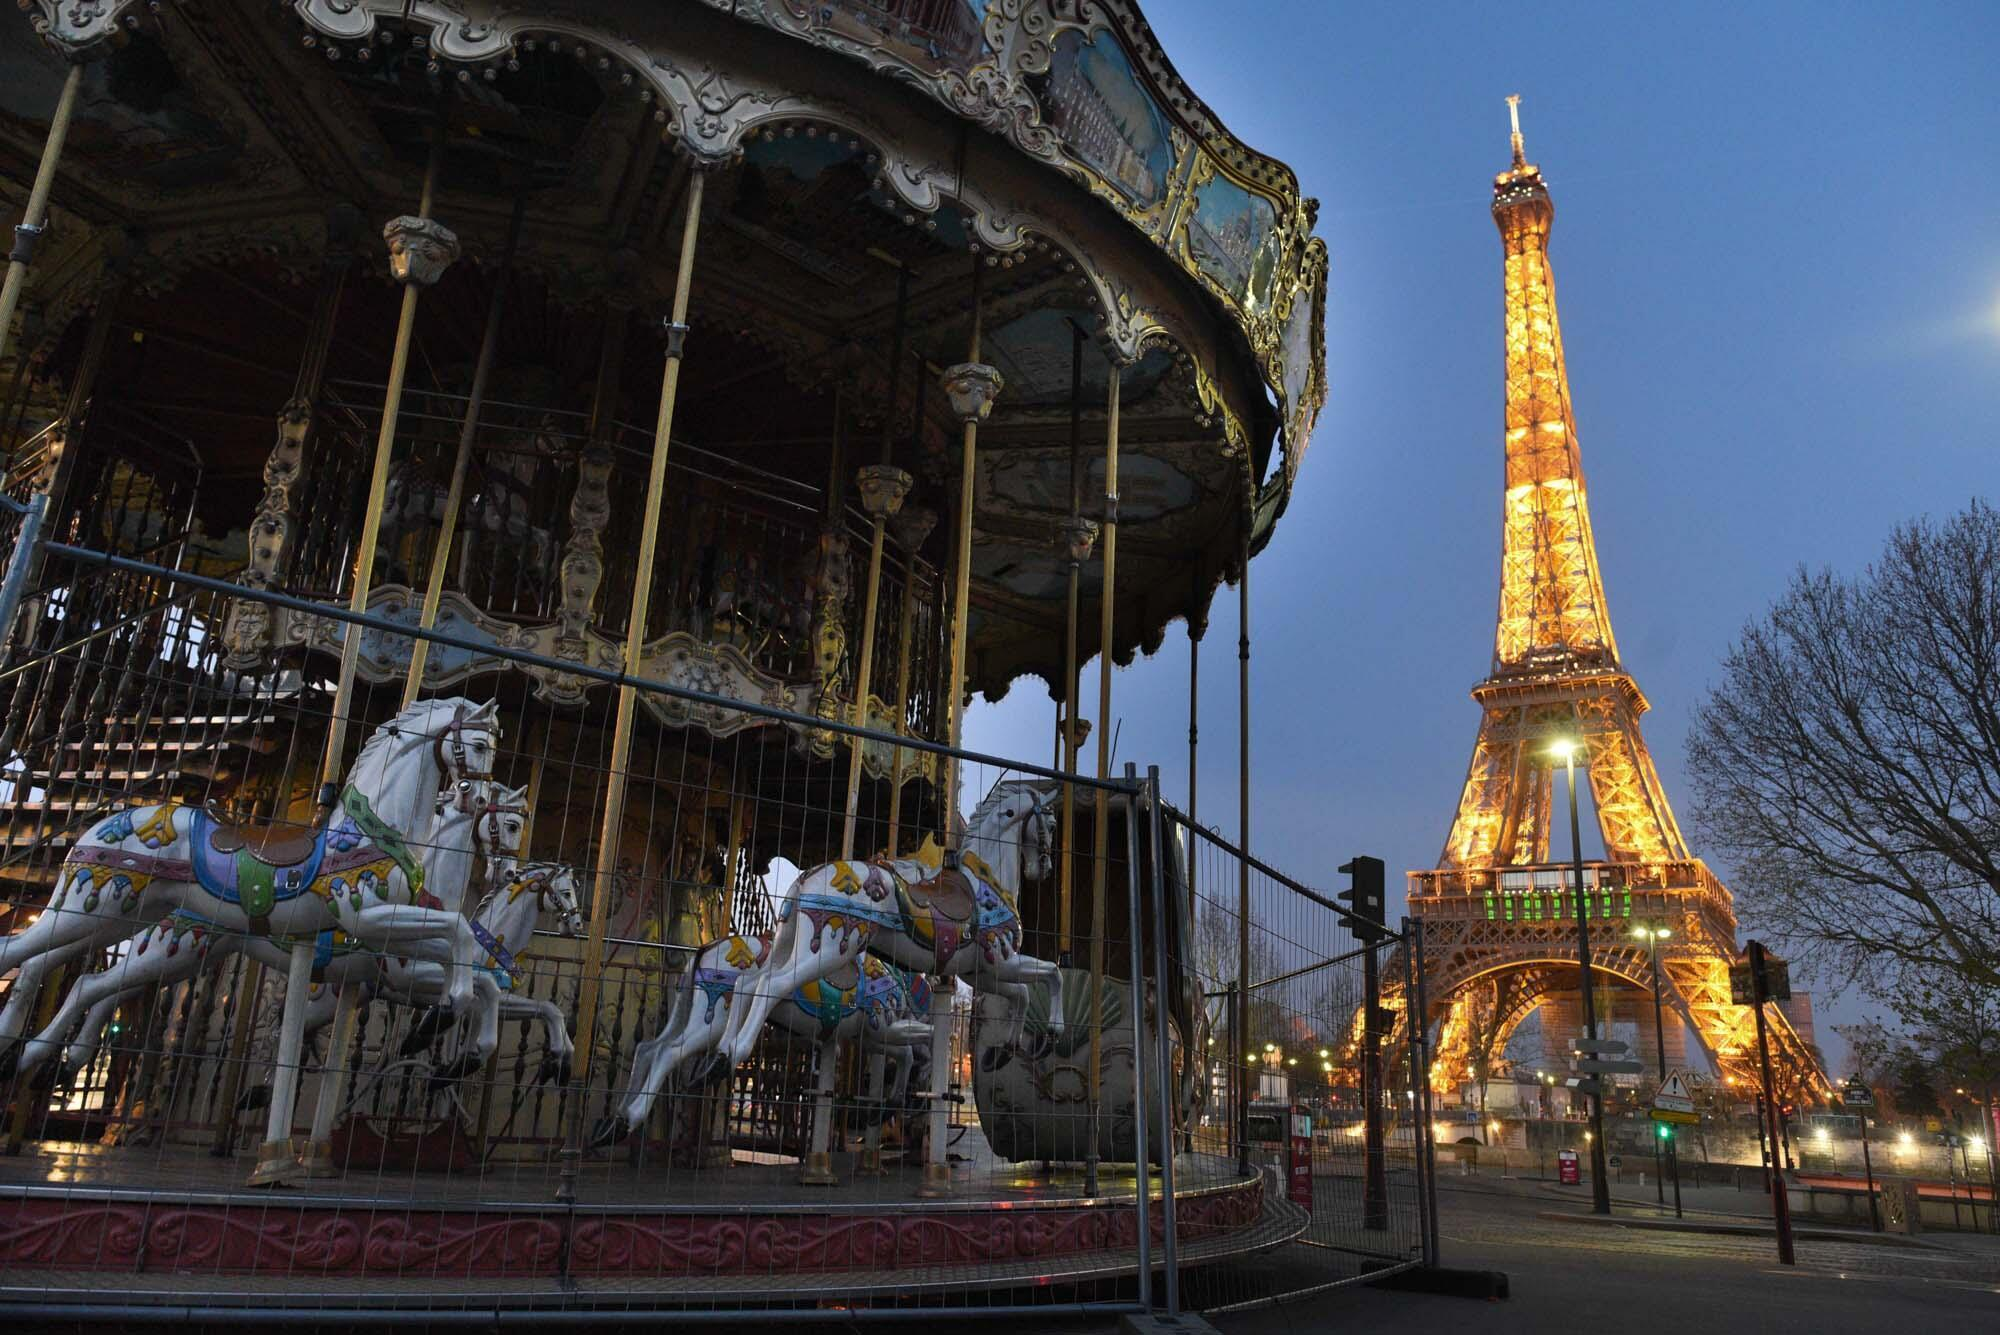 An empty merry-go-round near the Eiffel Tower. All non-essential commercial activities have been banned until at least April 15.